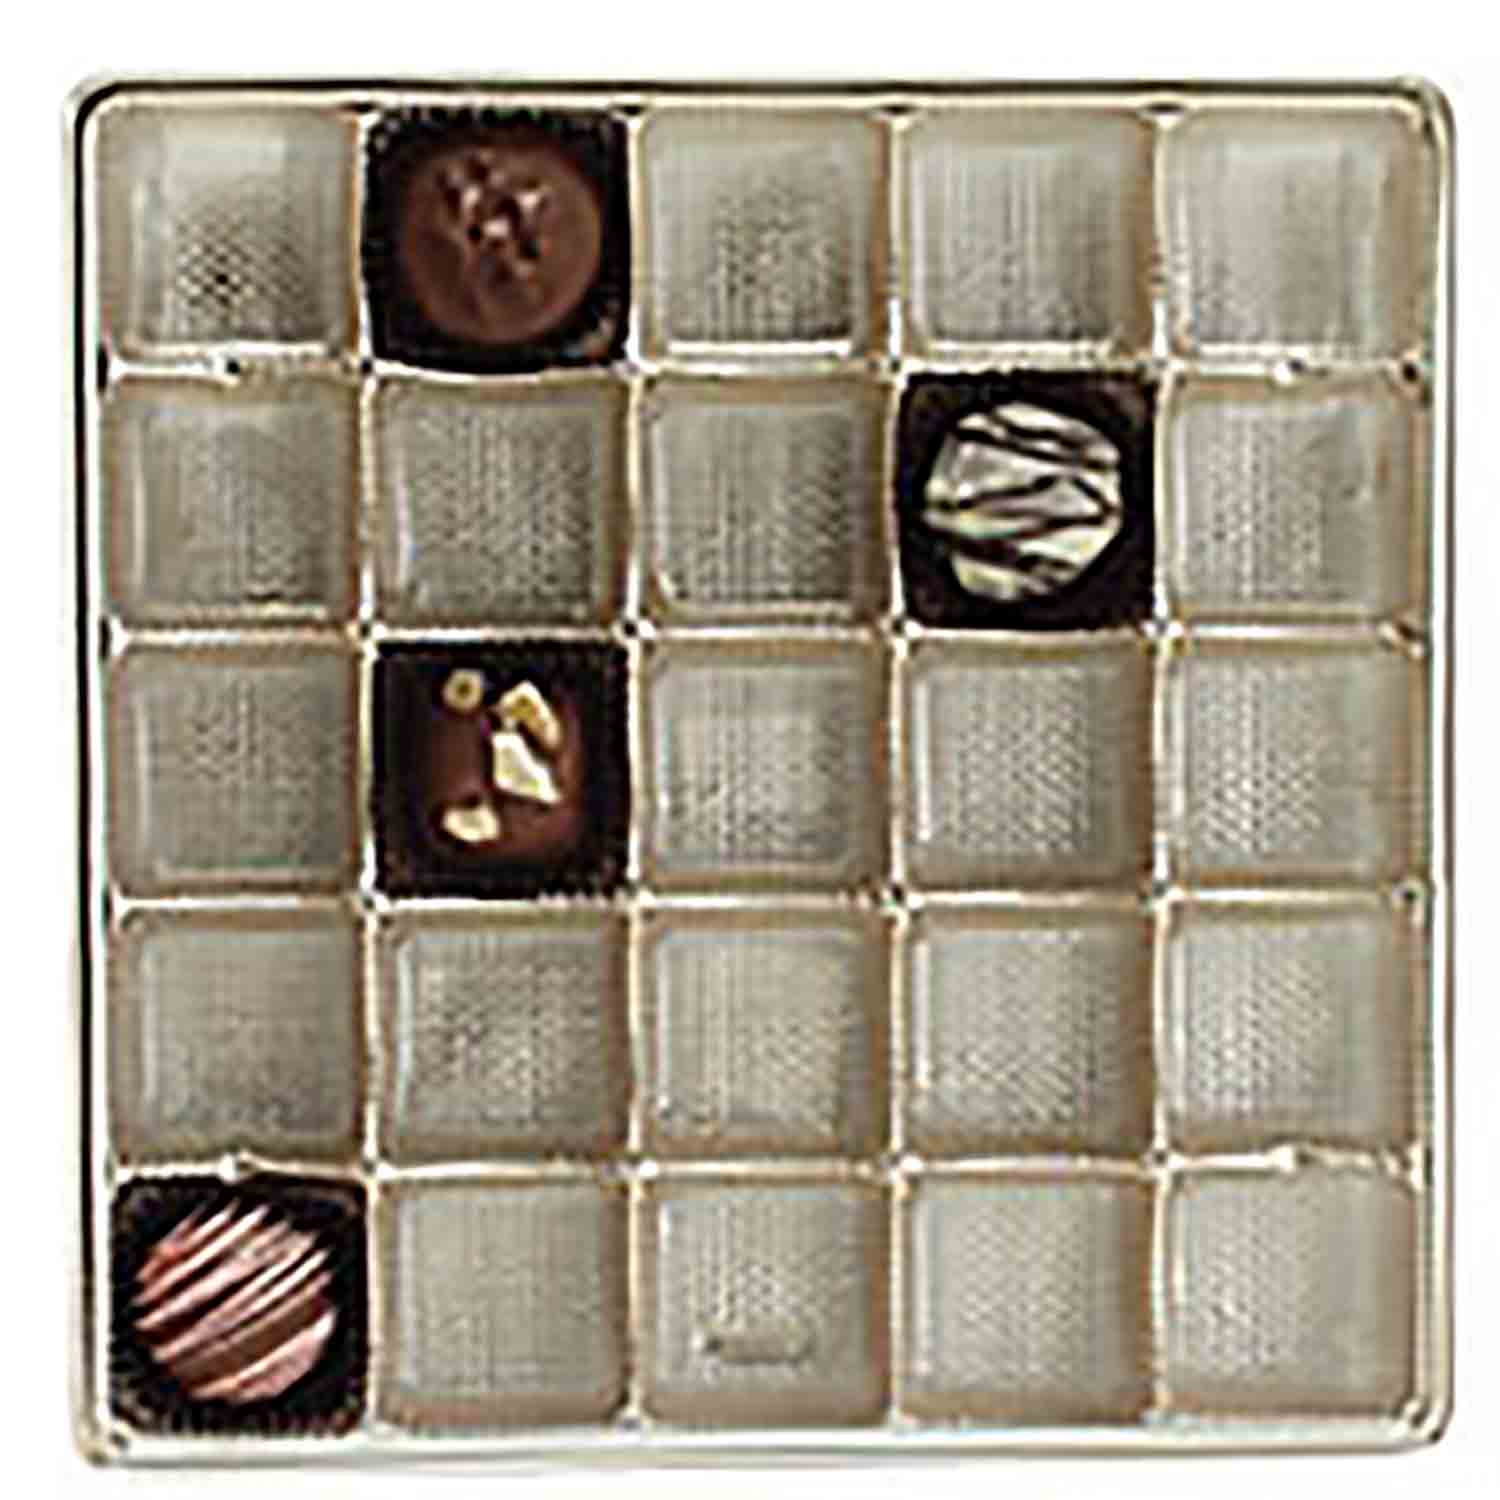 1 lb. Square Gold Insert, #4 cup, 25 cavities